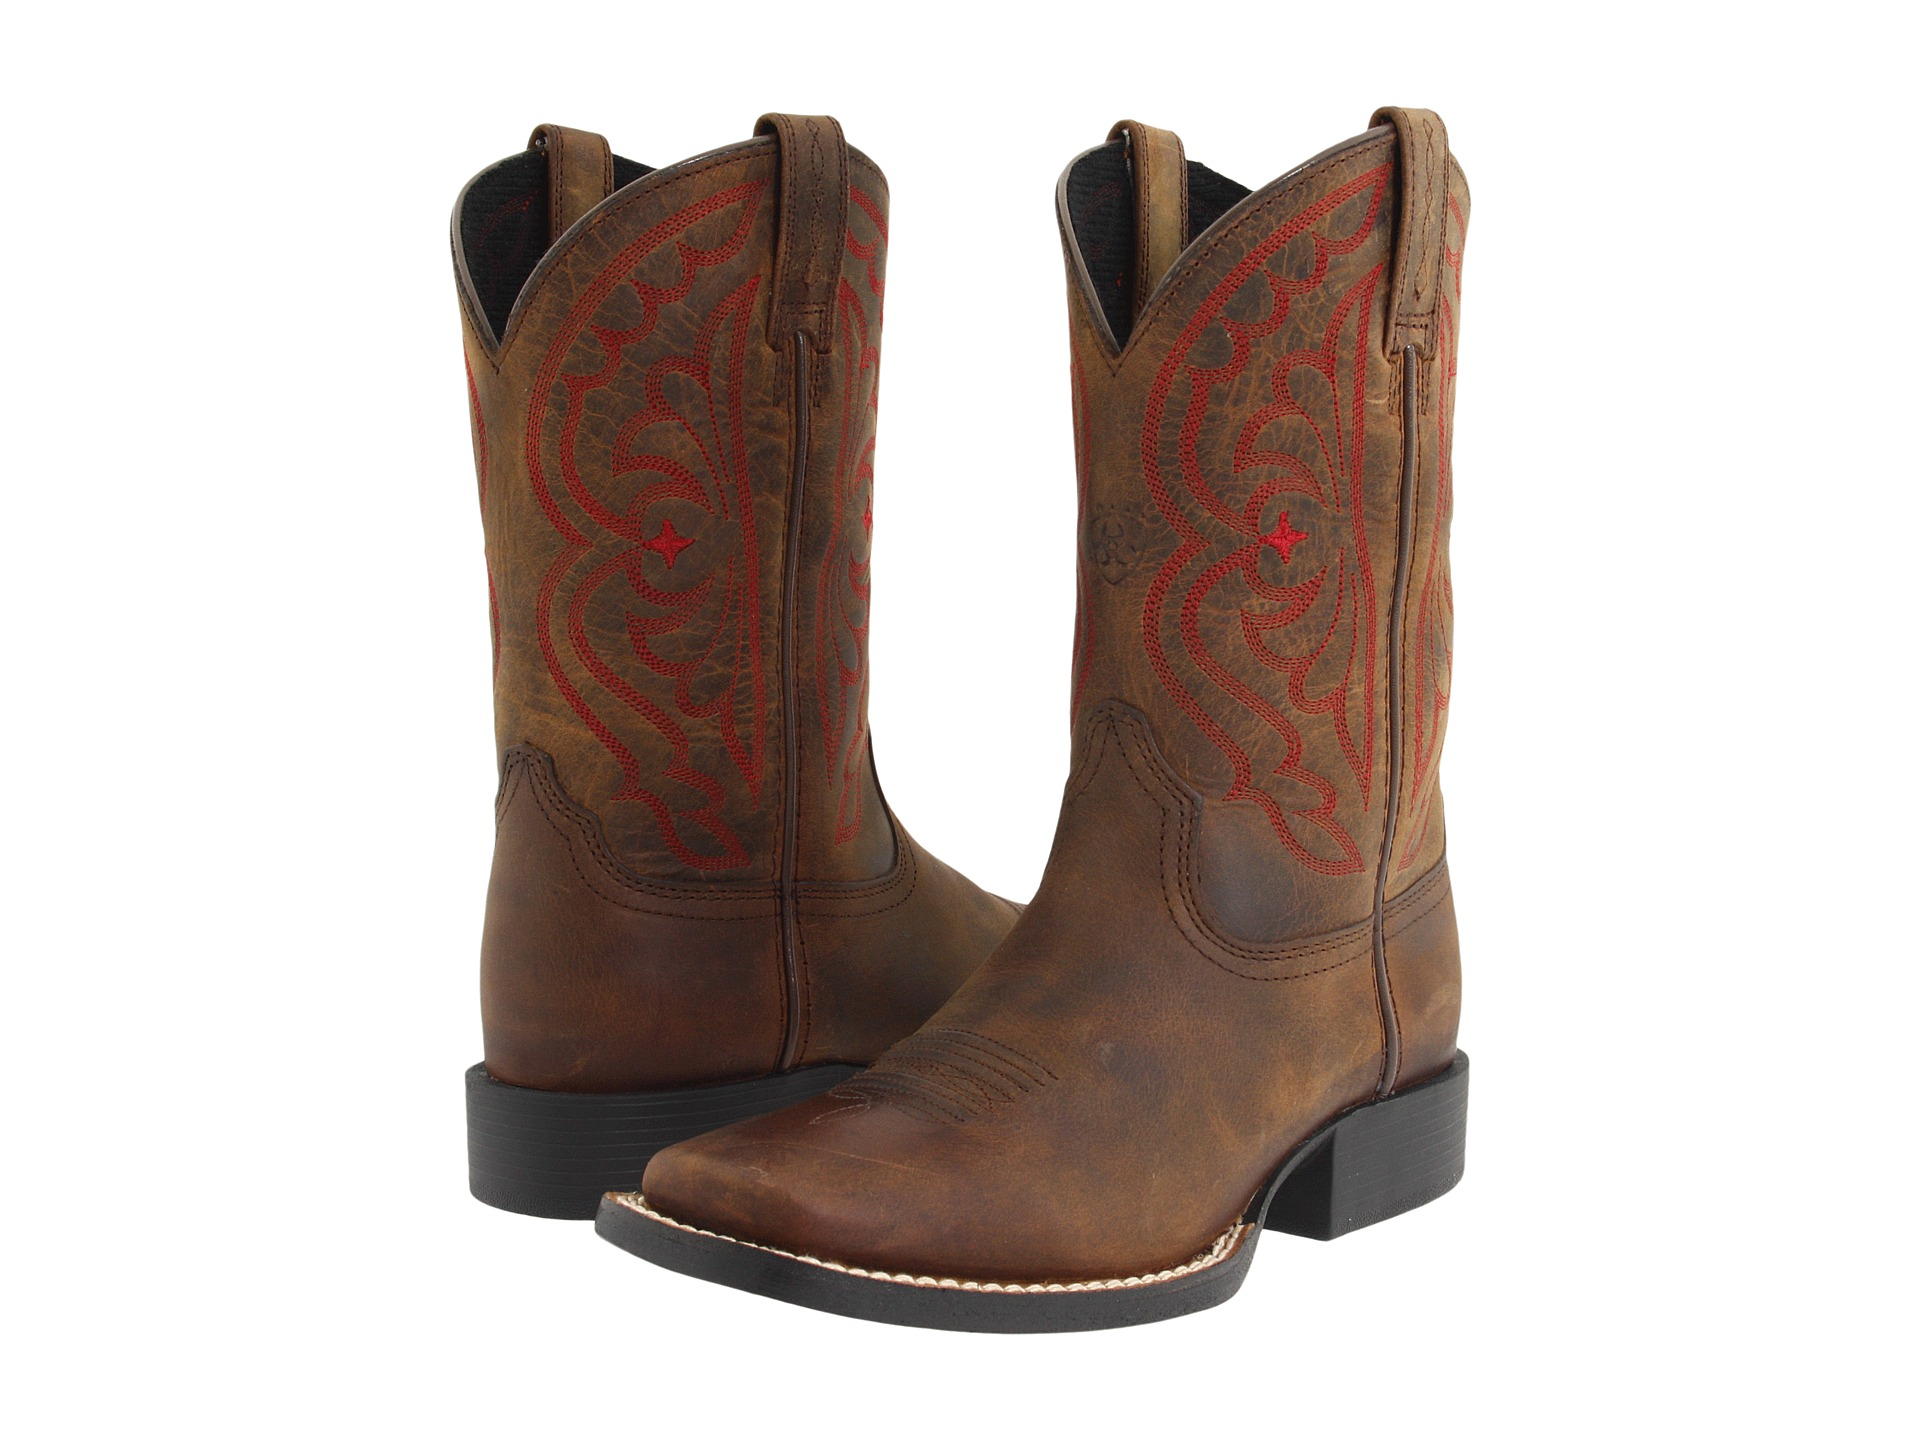 Ariat, Boots, Girls | Shipped Free at Zappos